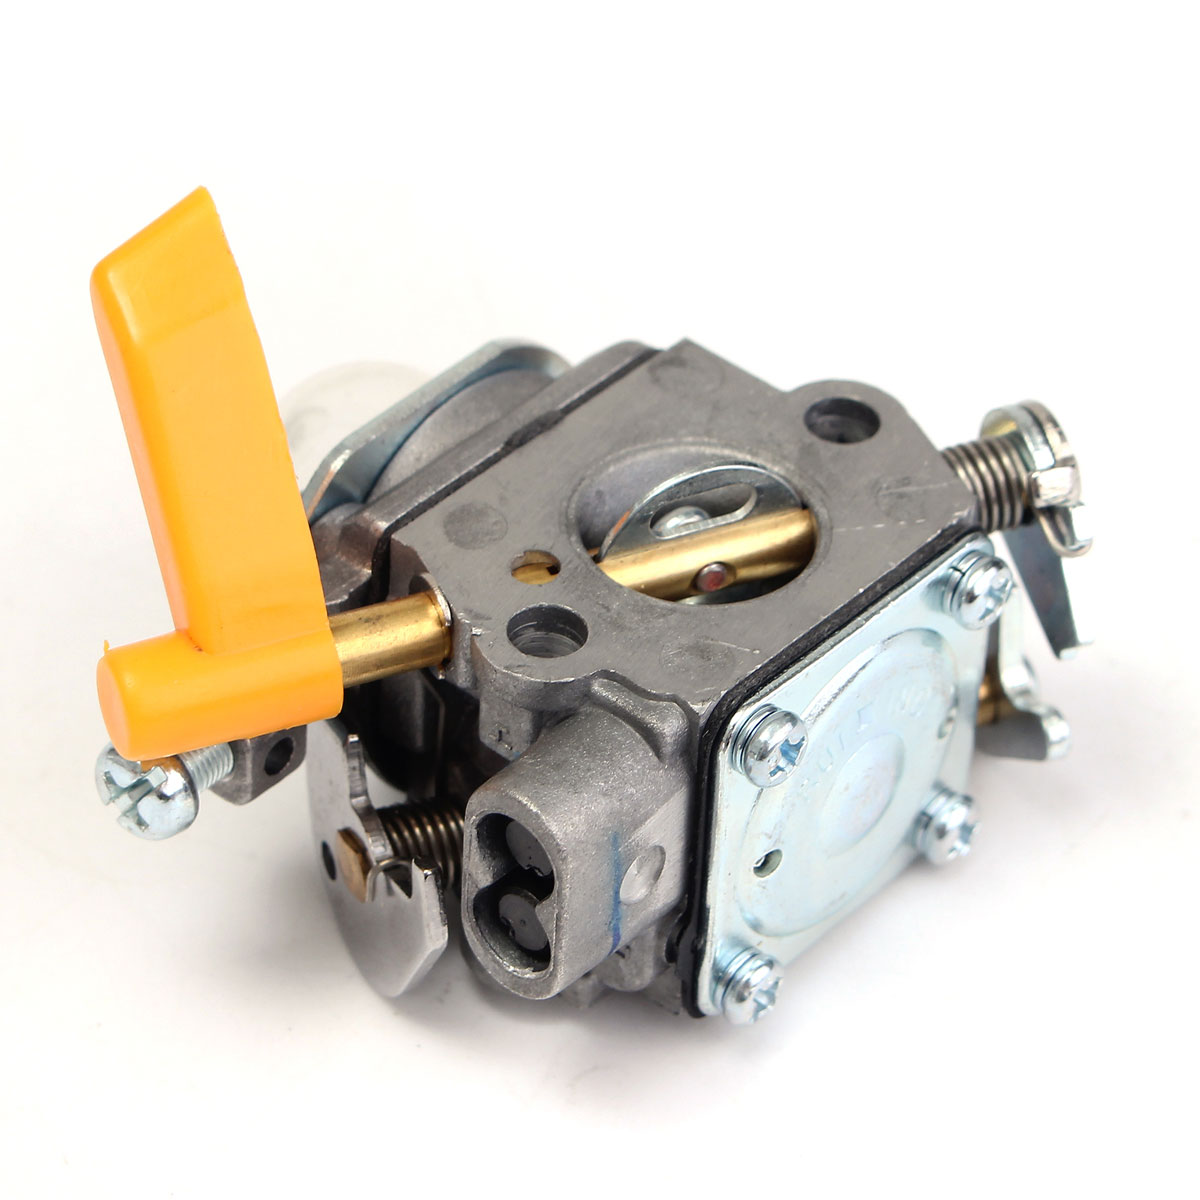 Lawn Mower Carburetor For Ryobi Homelite String Trimmer Brushcutter Wiring Diagram 308054077 Fuel Oil Supply Carburetors In From Automobiles Motorcycles On